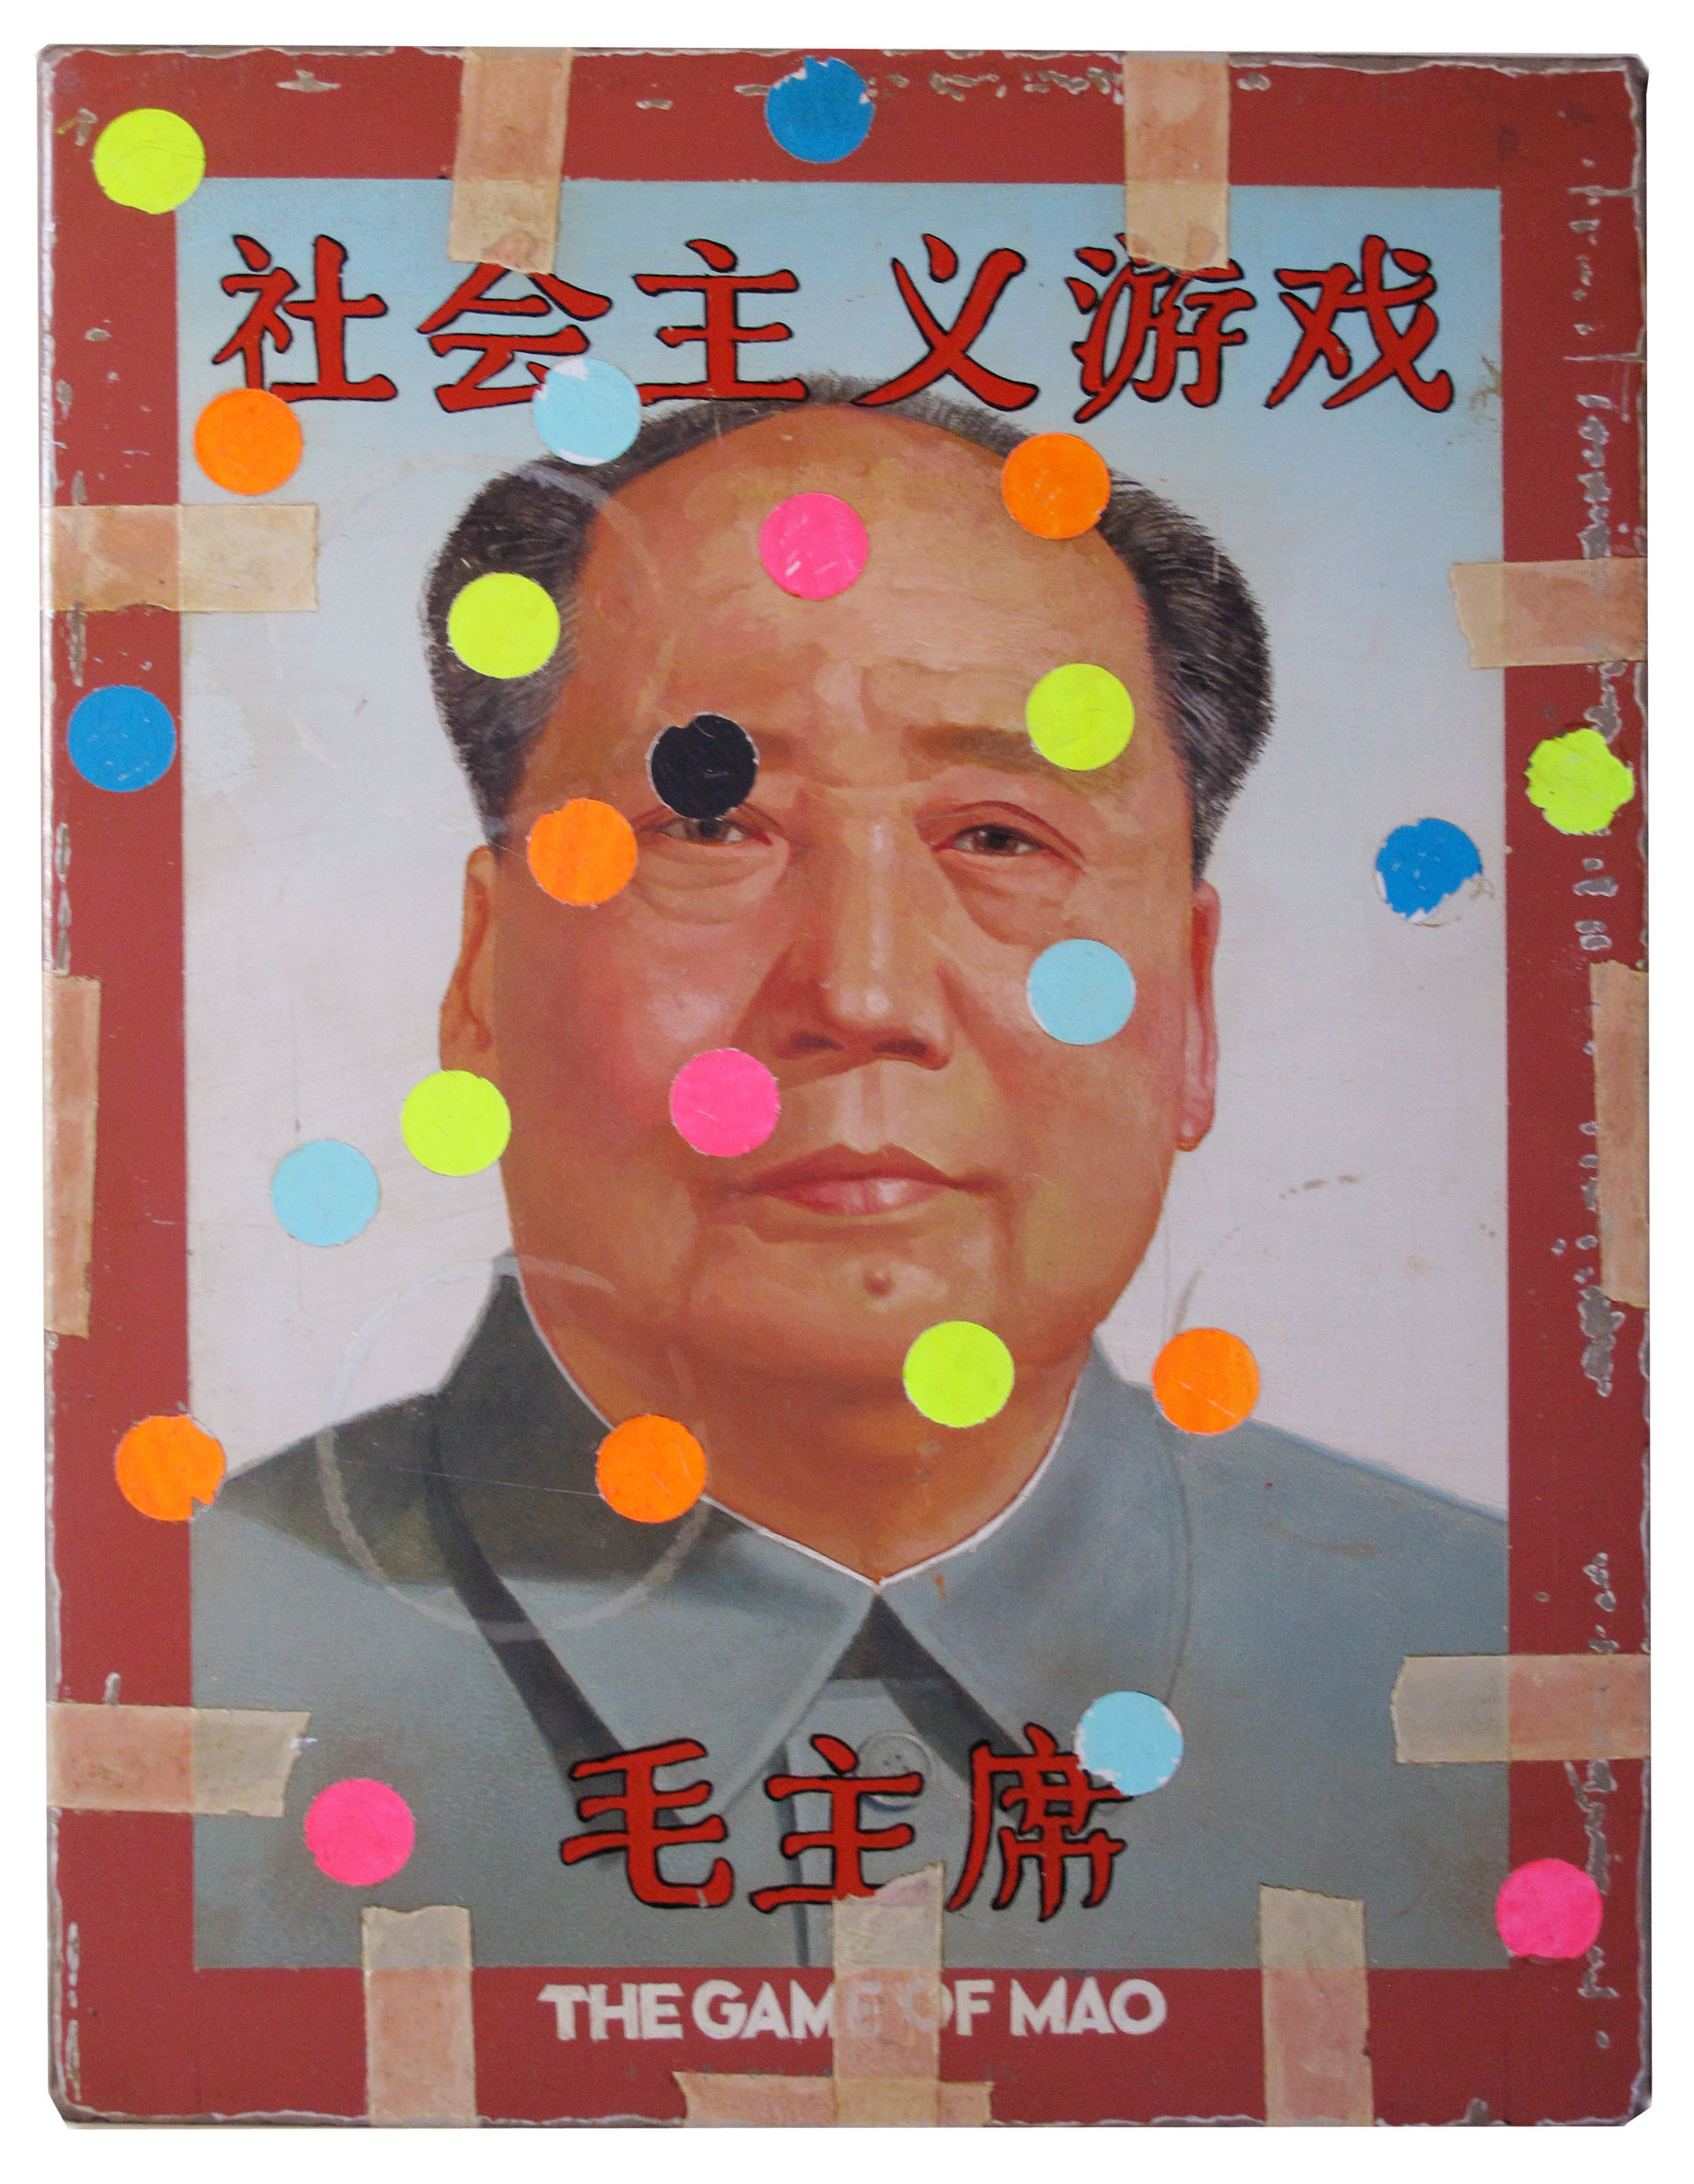 Game of Mao by Tim Liddy